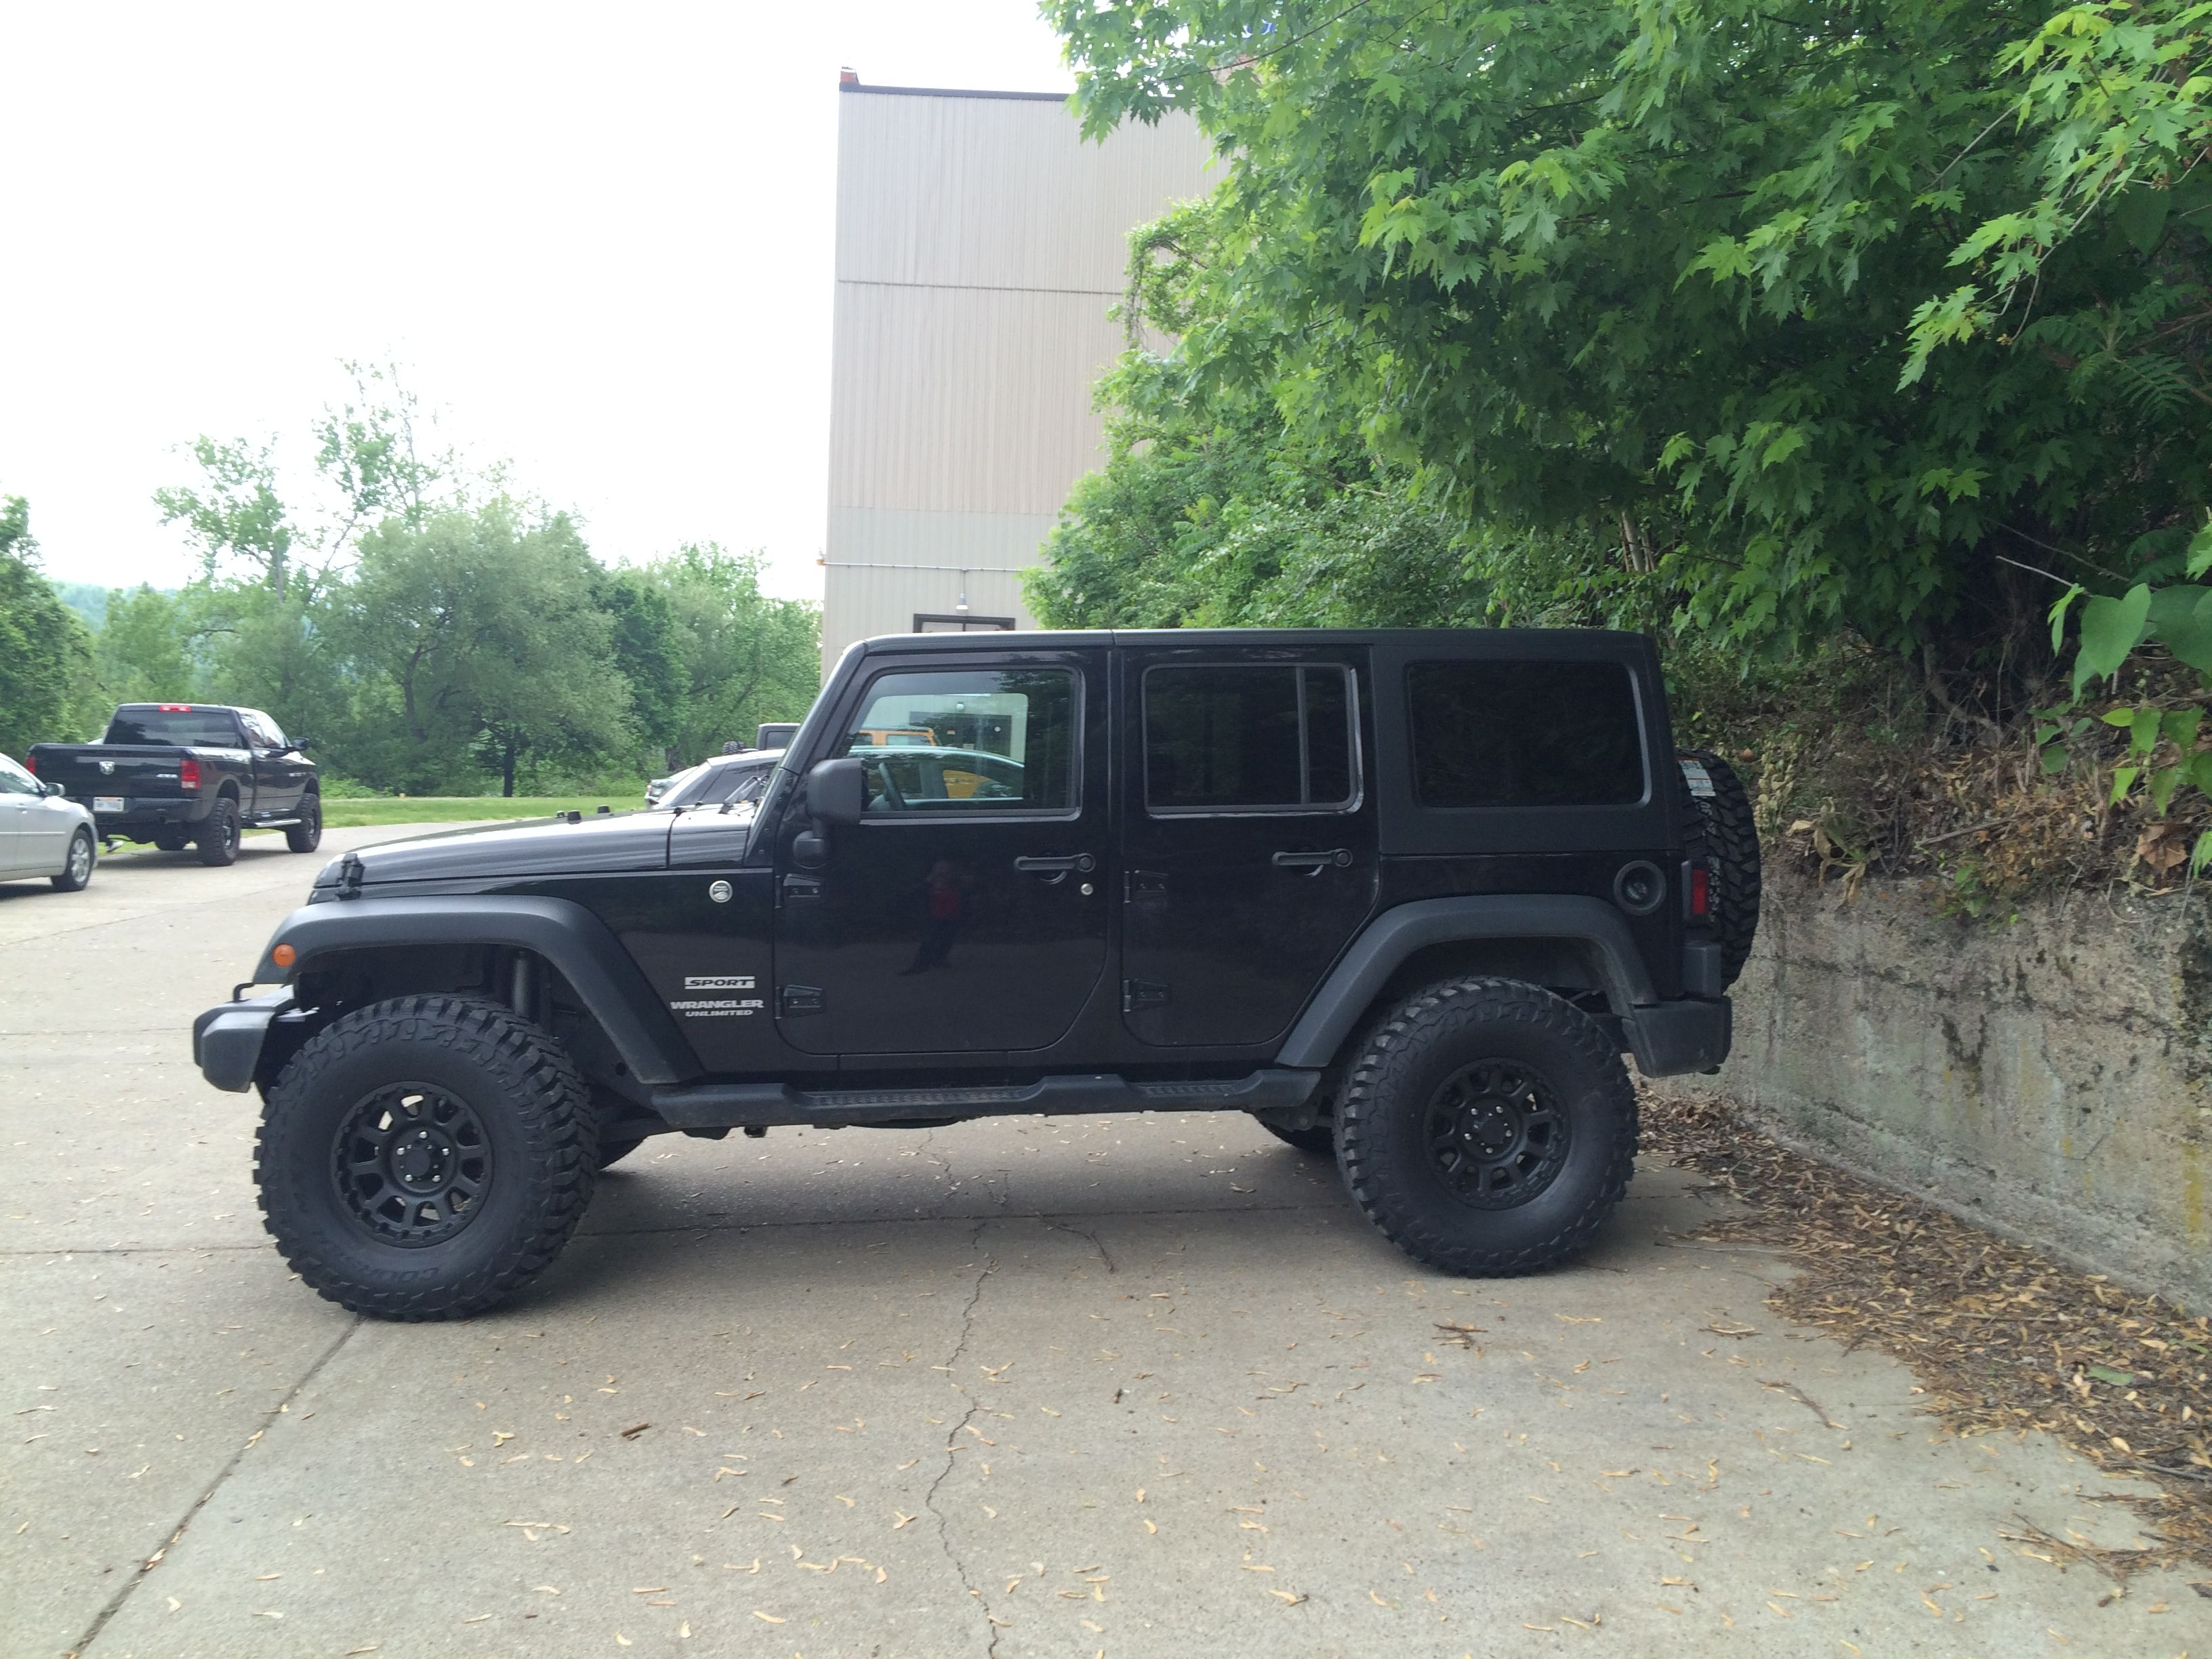 2013 Jk With Modifications Installed At Ntw 2 1 2 Rough Country